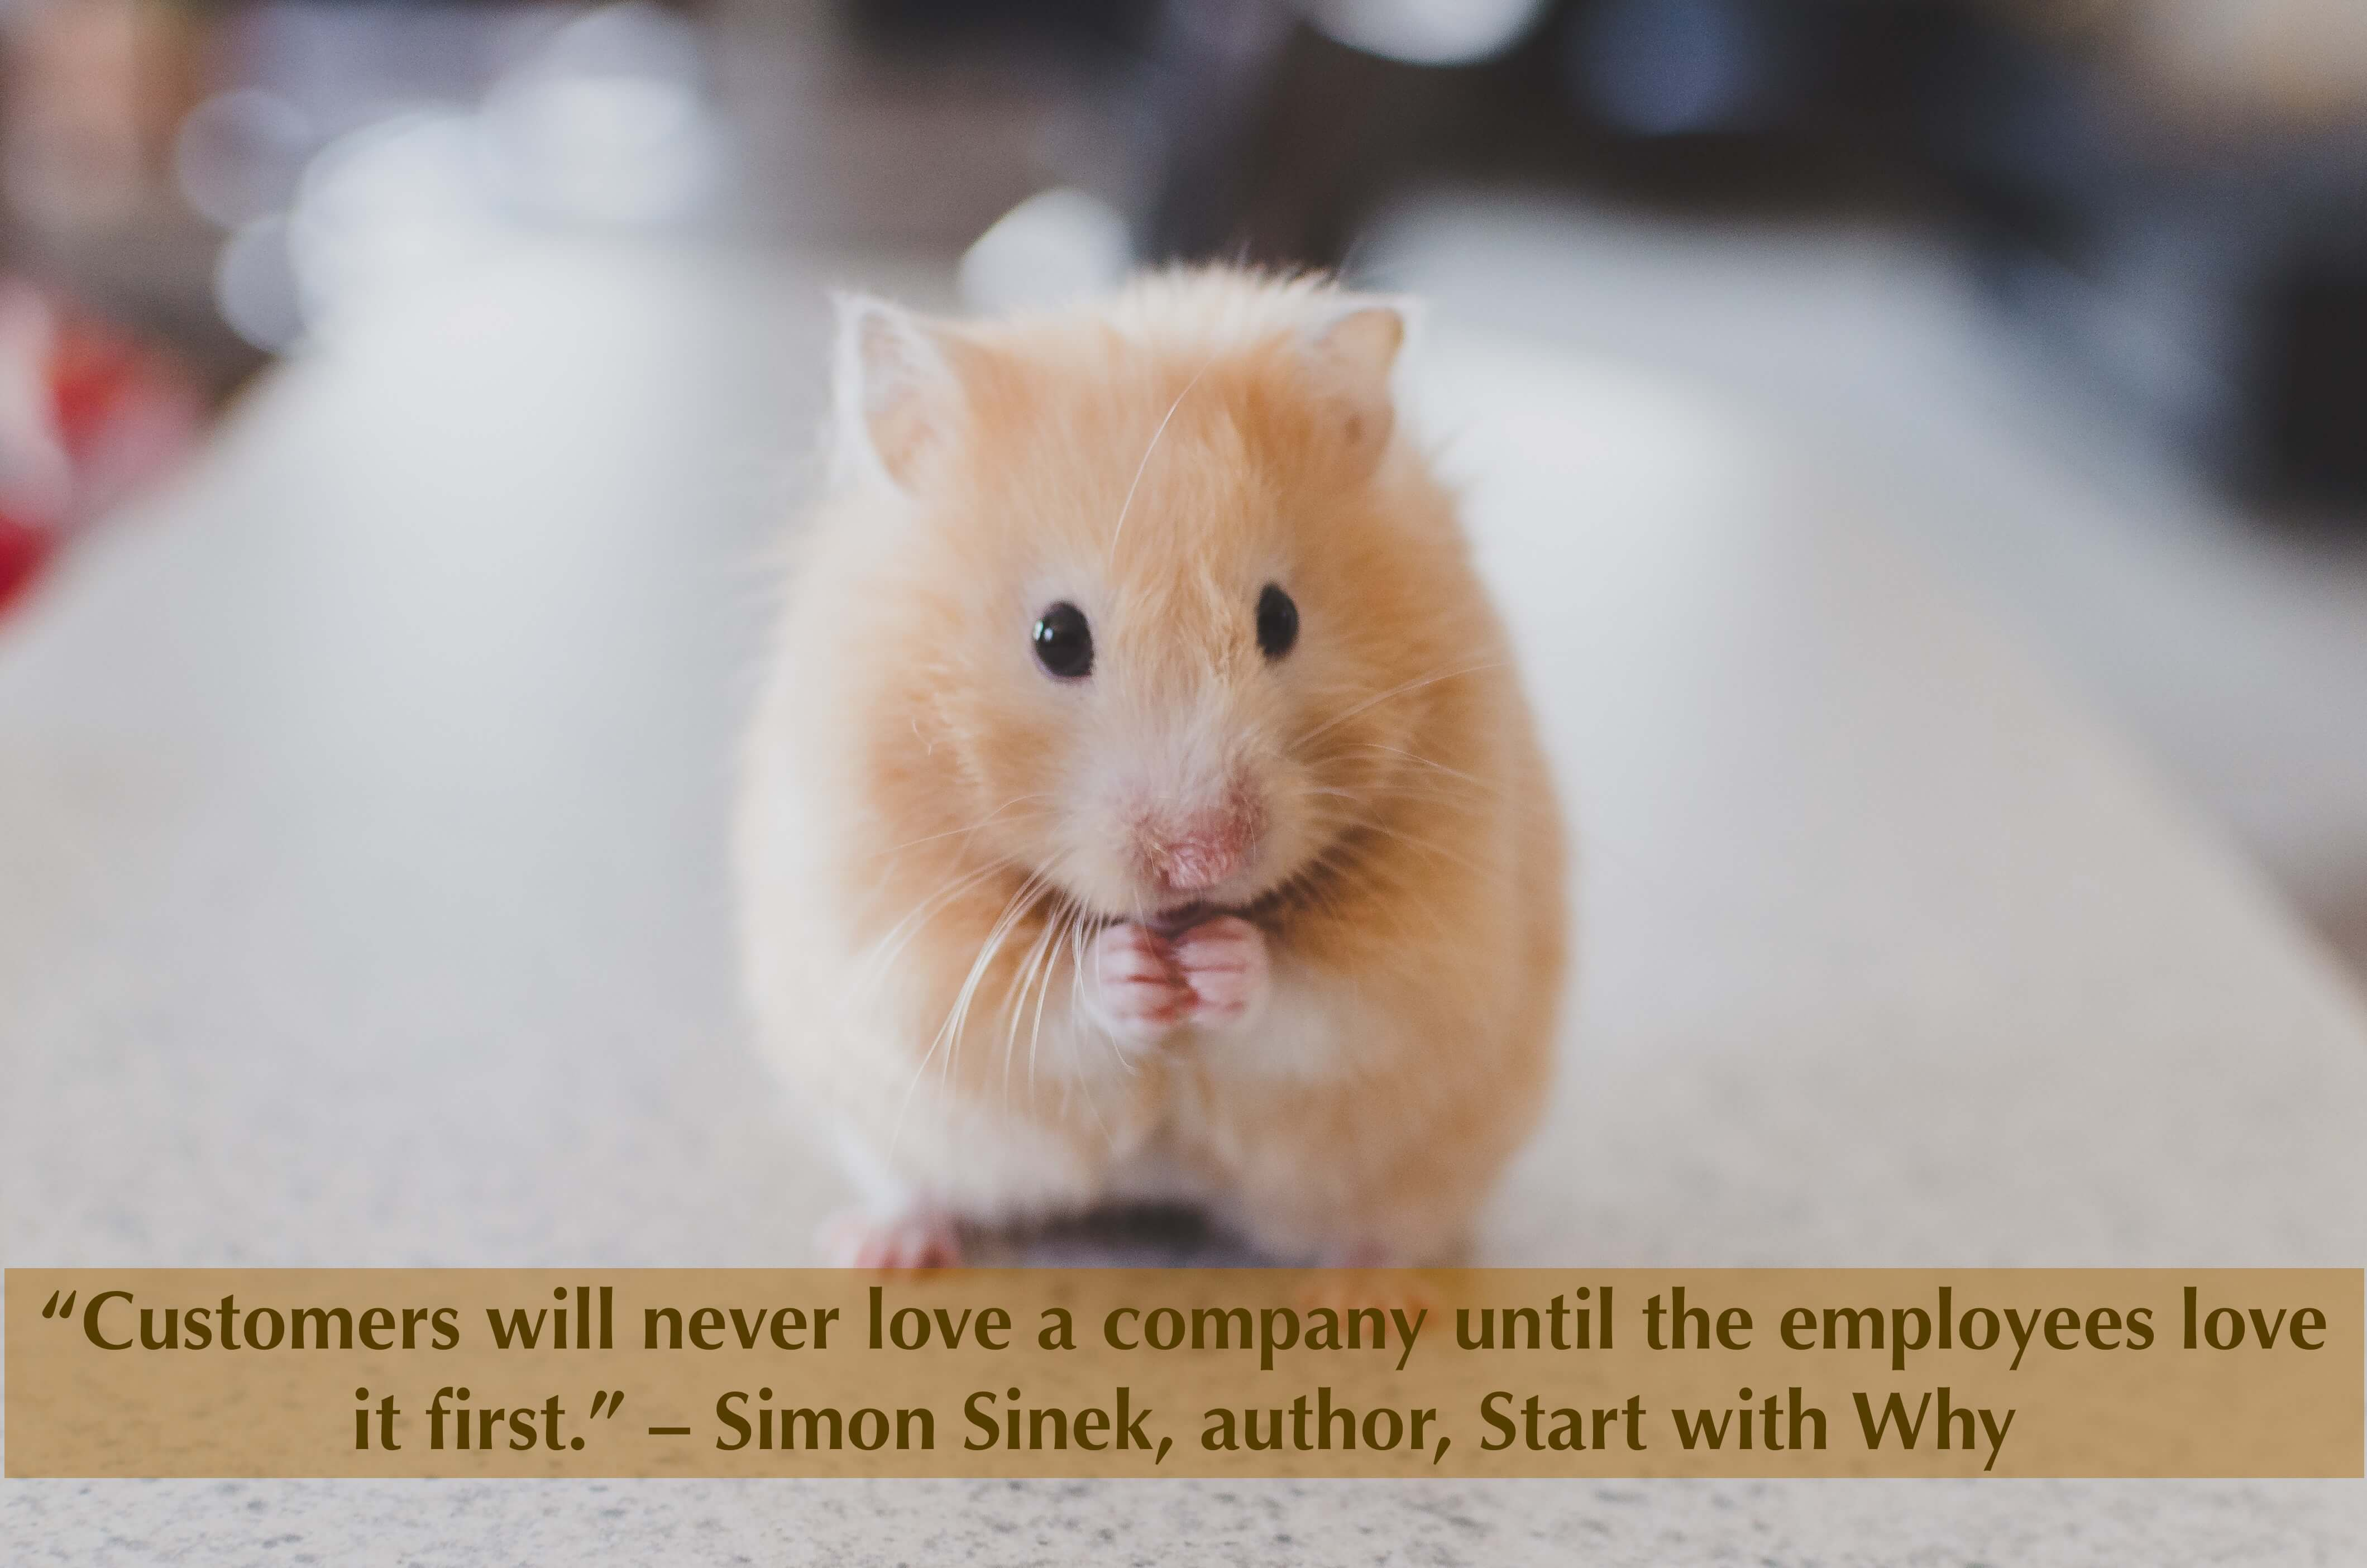 """Customers will never love a company until the employees love it first."" – Simon Sinek, author, Start with Why"